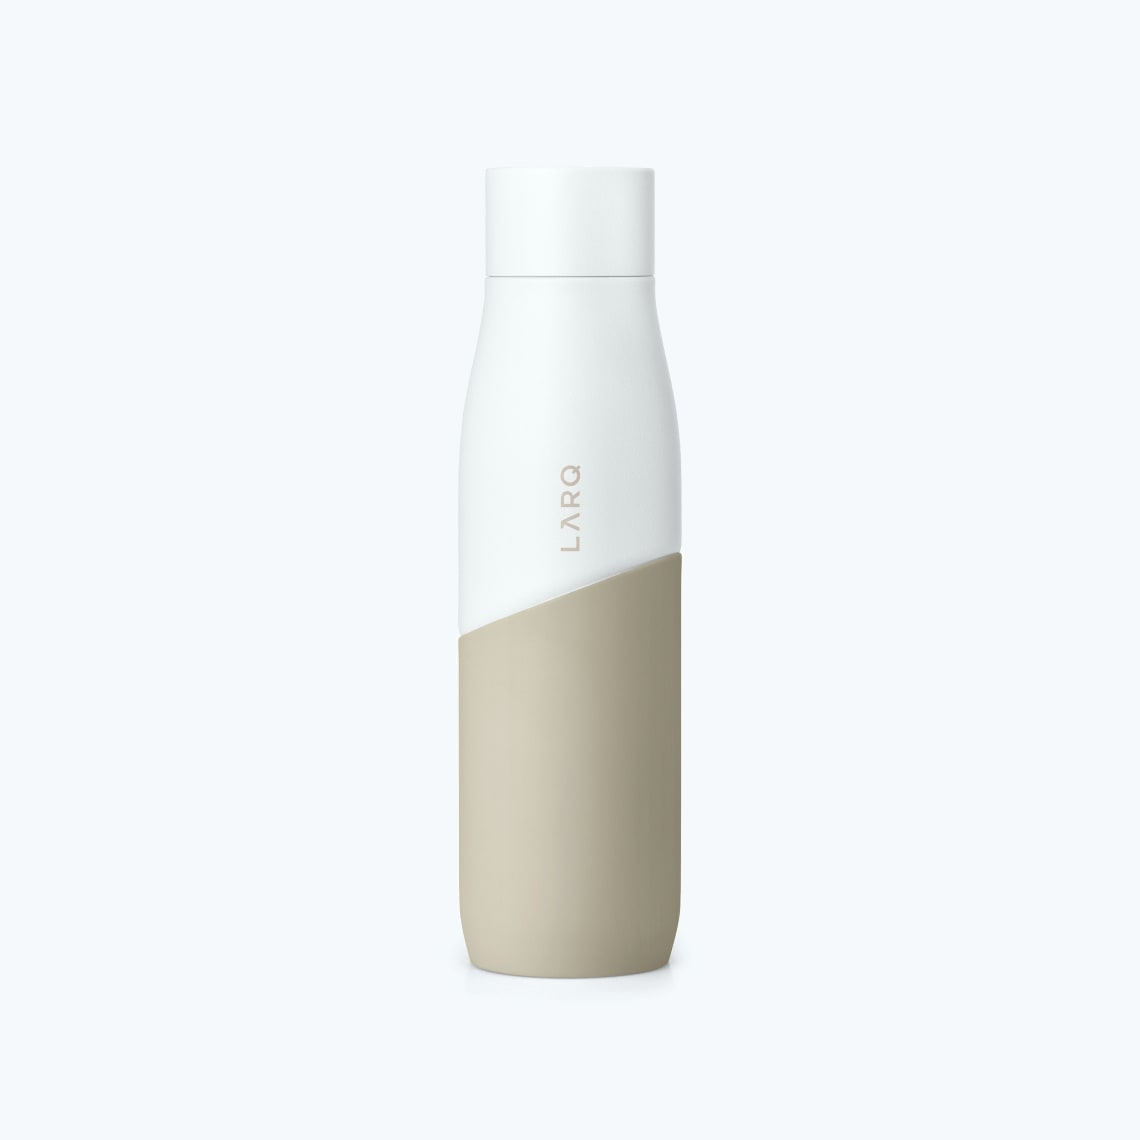 LARQ Bottle Movement PureVis™ White / Dune main